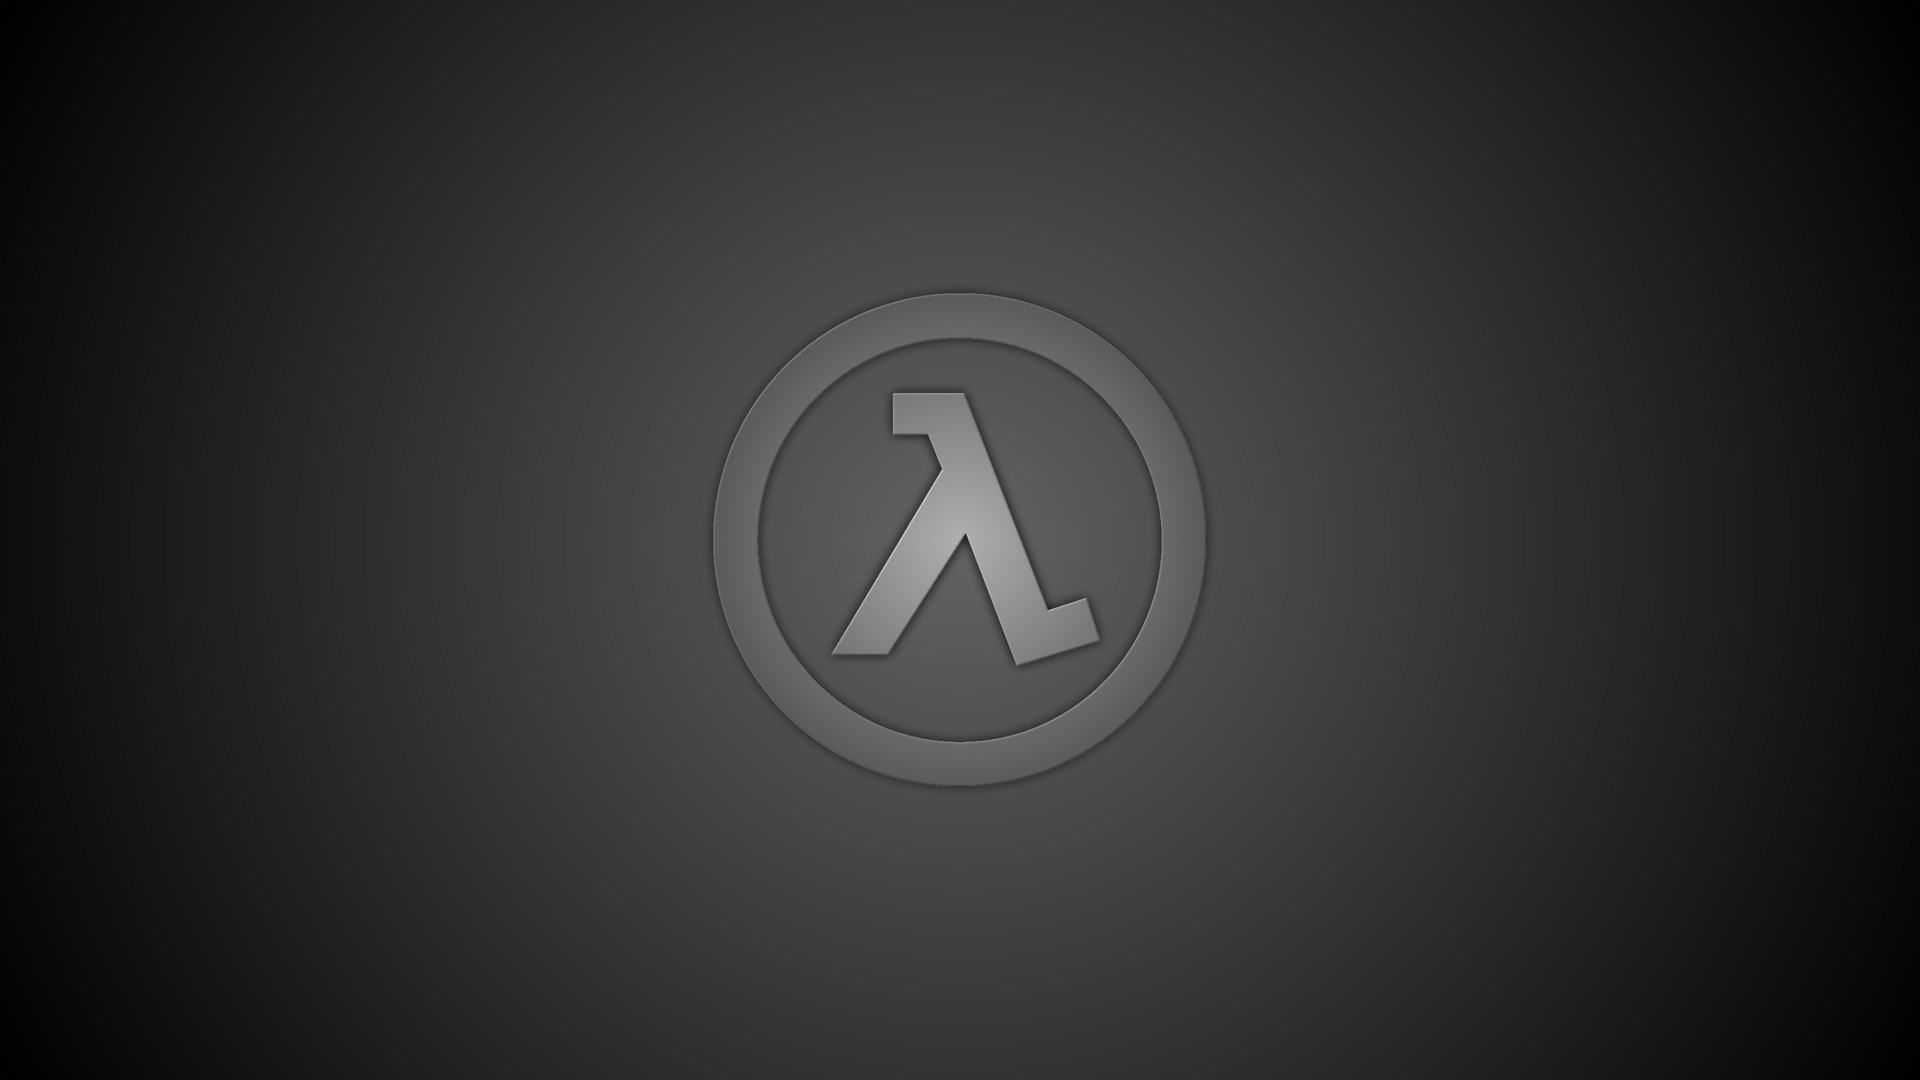 1920x1080  Wallpaper half-life, emblem, background, gray